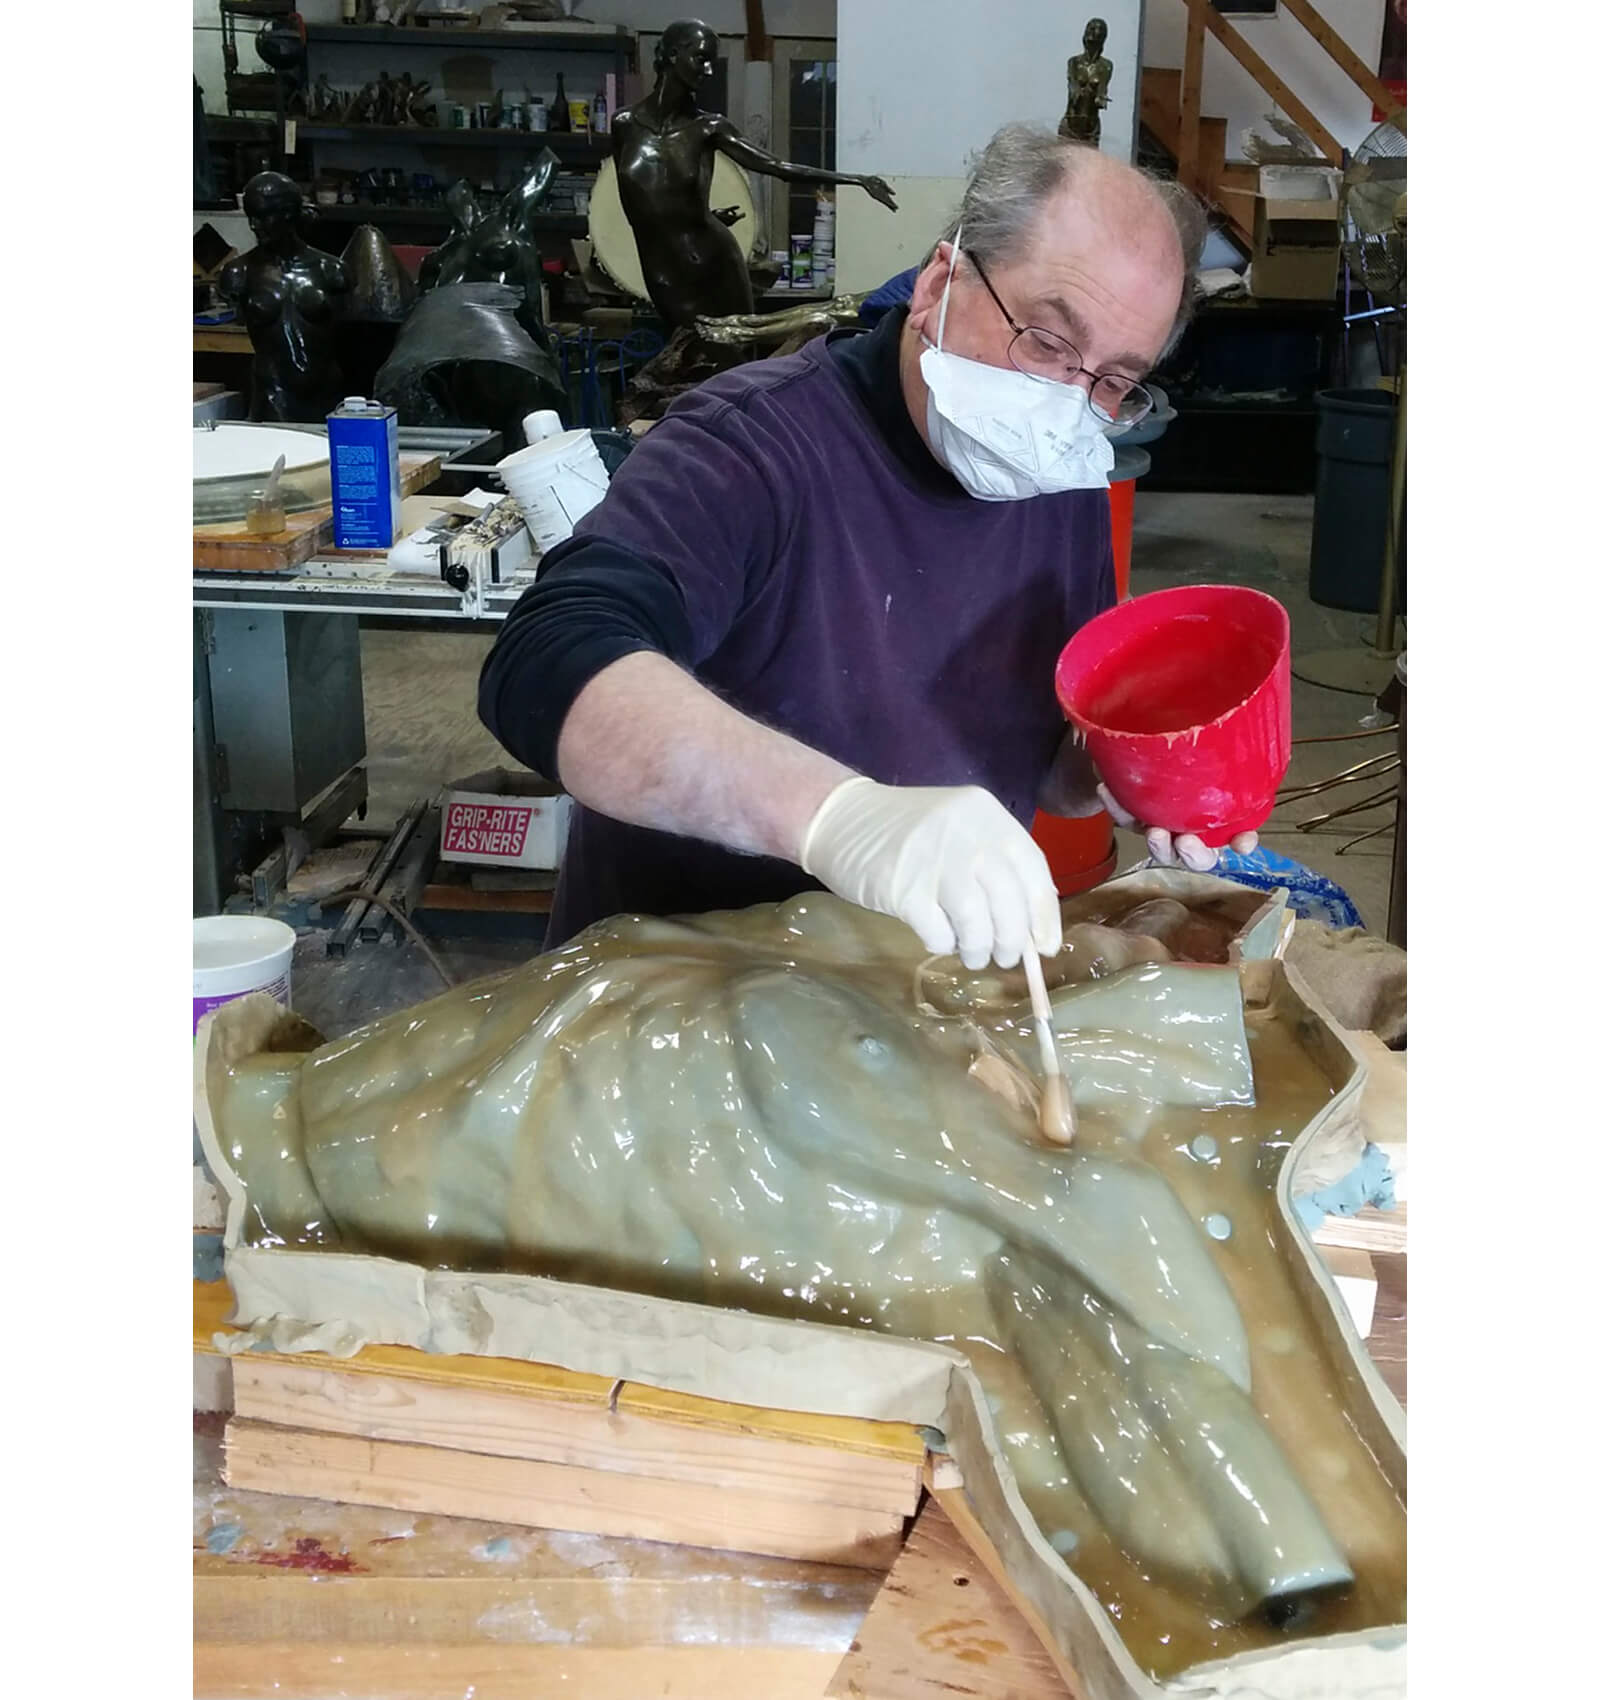 Andrew DeVries paintint rubber mold material on the upper torso of Echoes